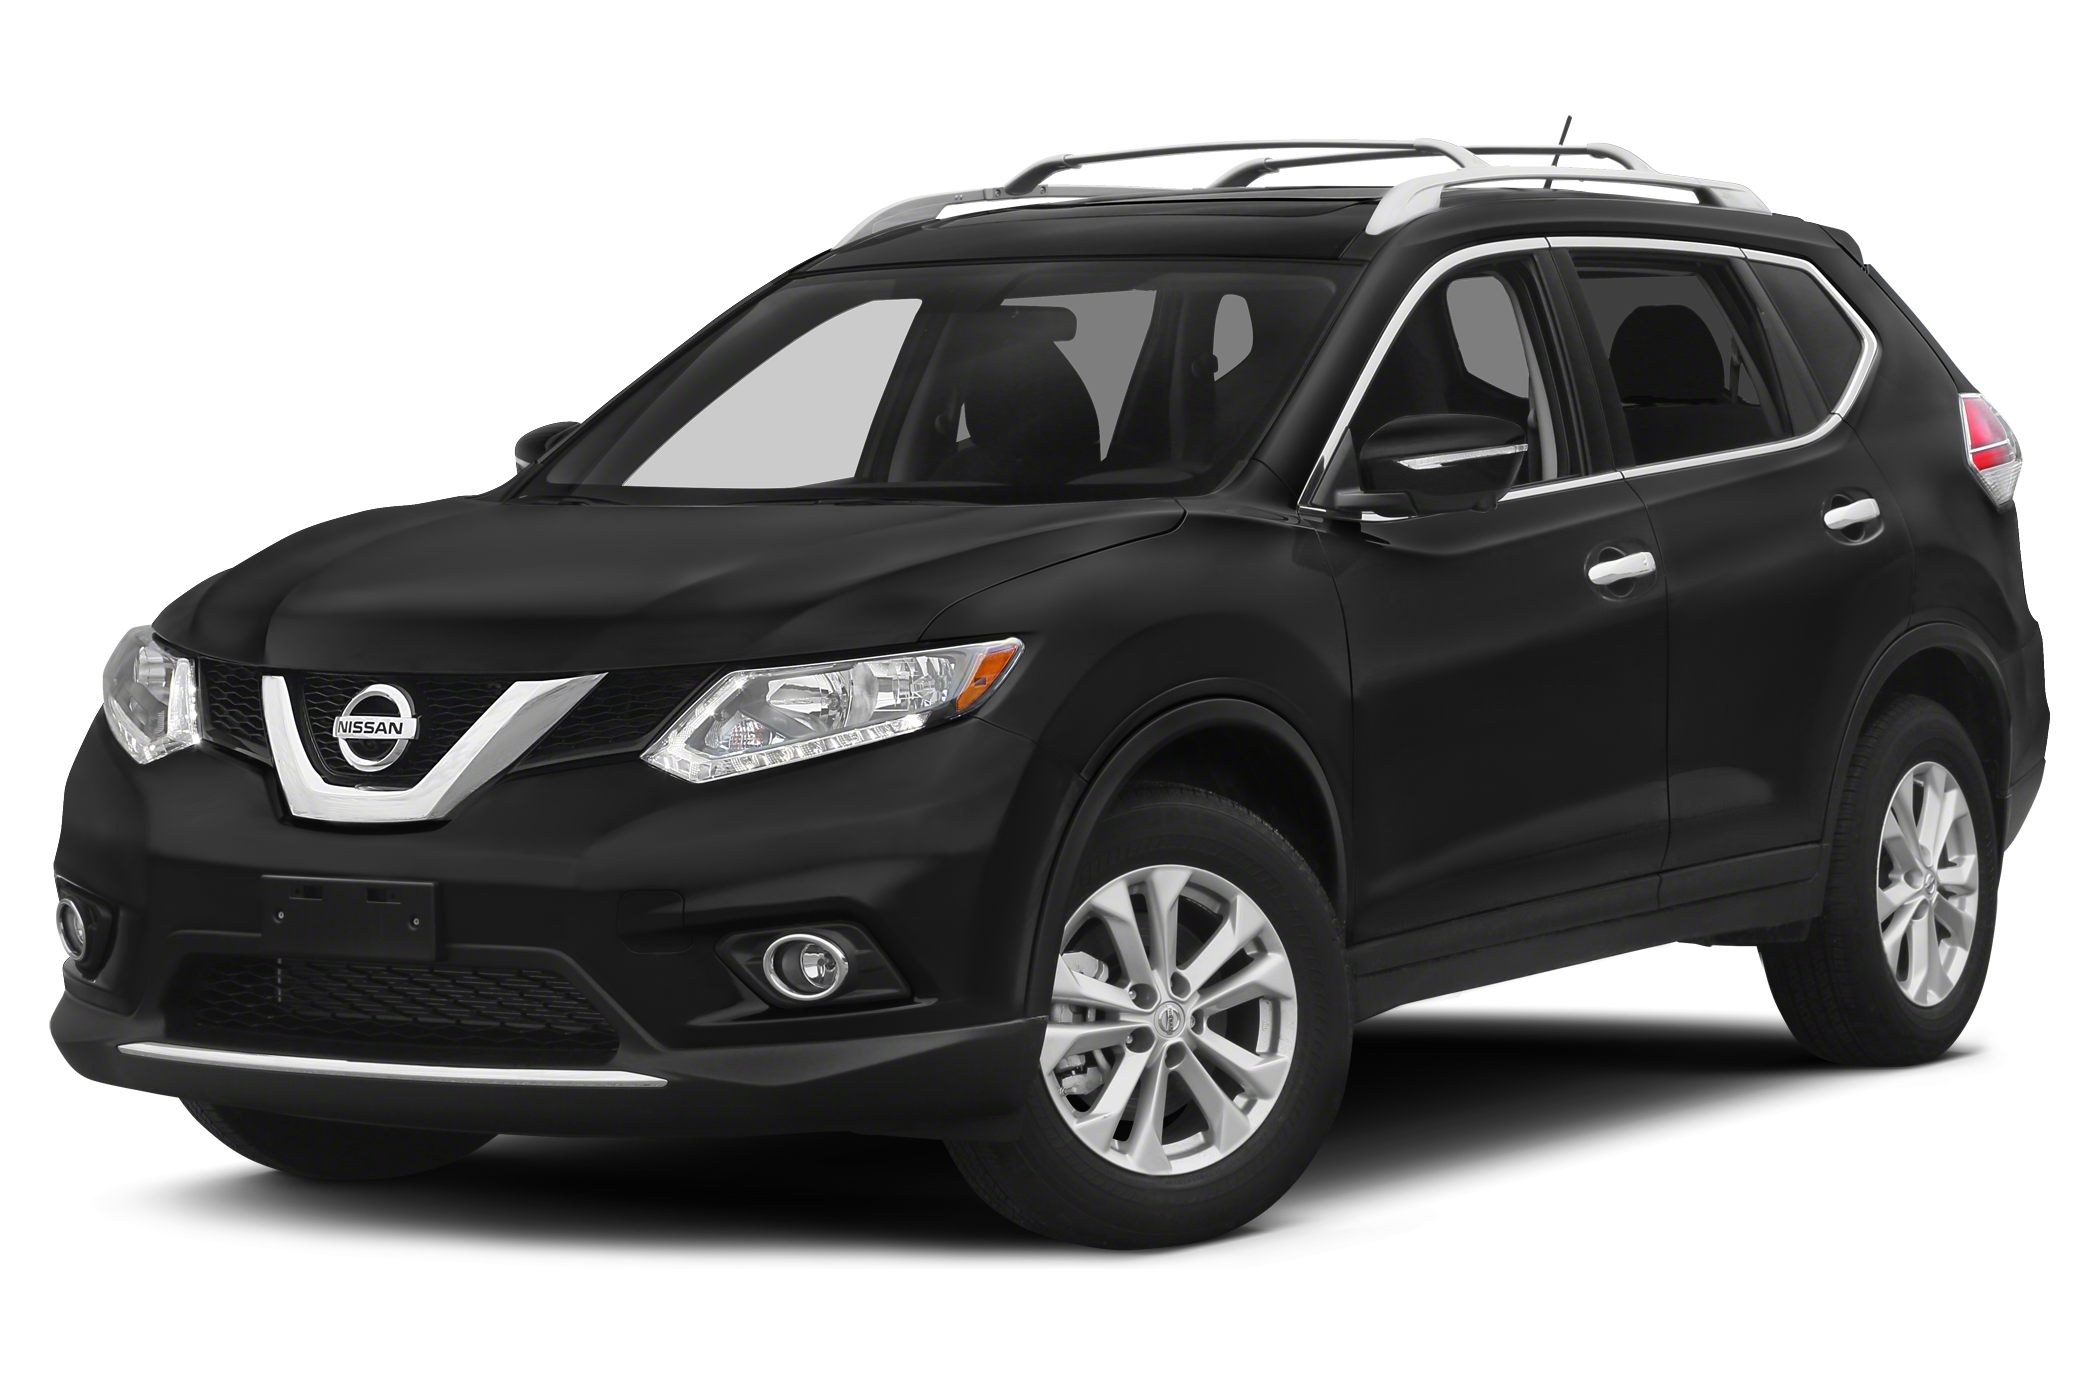 2015 Nissan Rogue S SUV for sale in Tacoma for $25,270 with 12 miles.